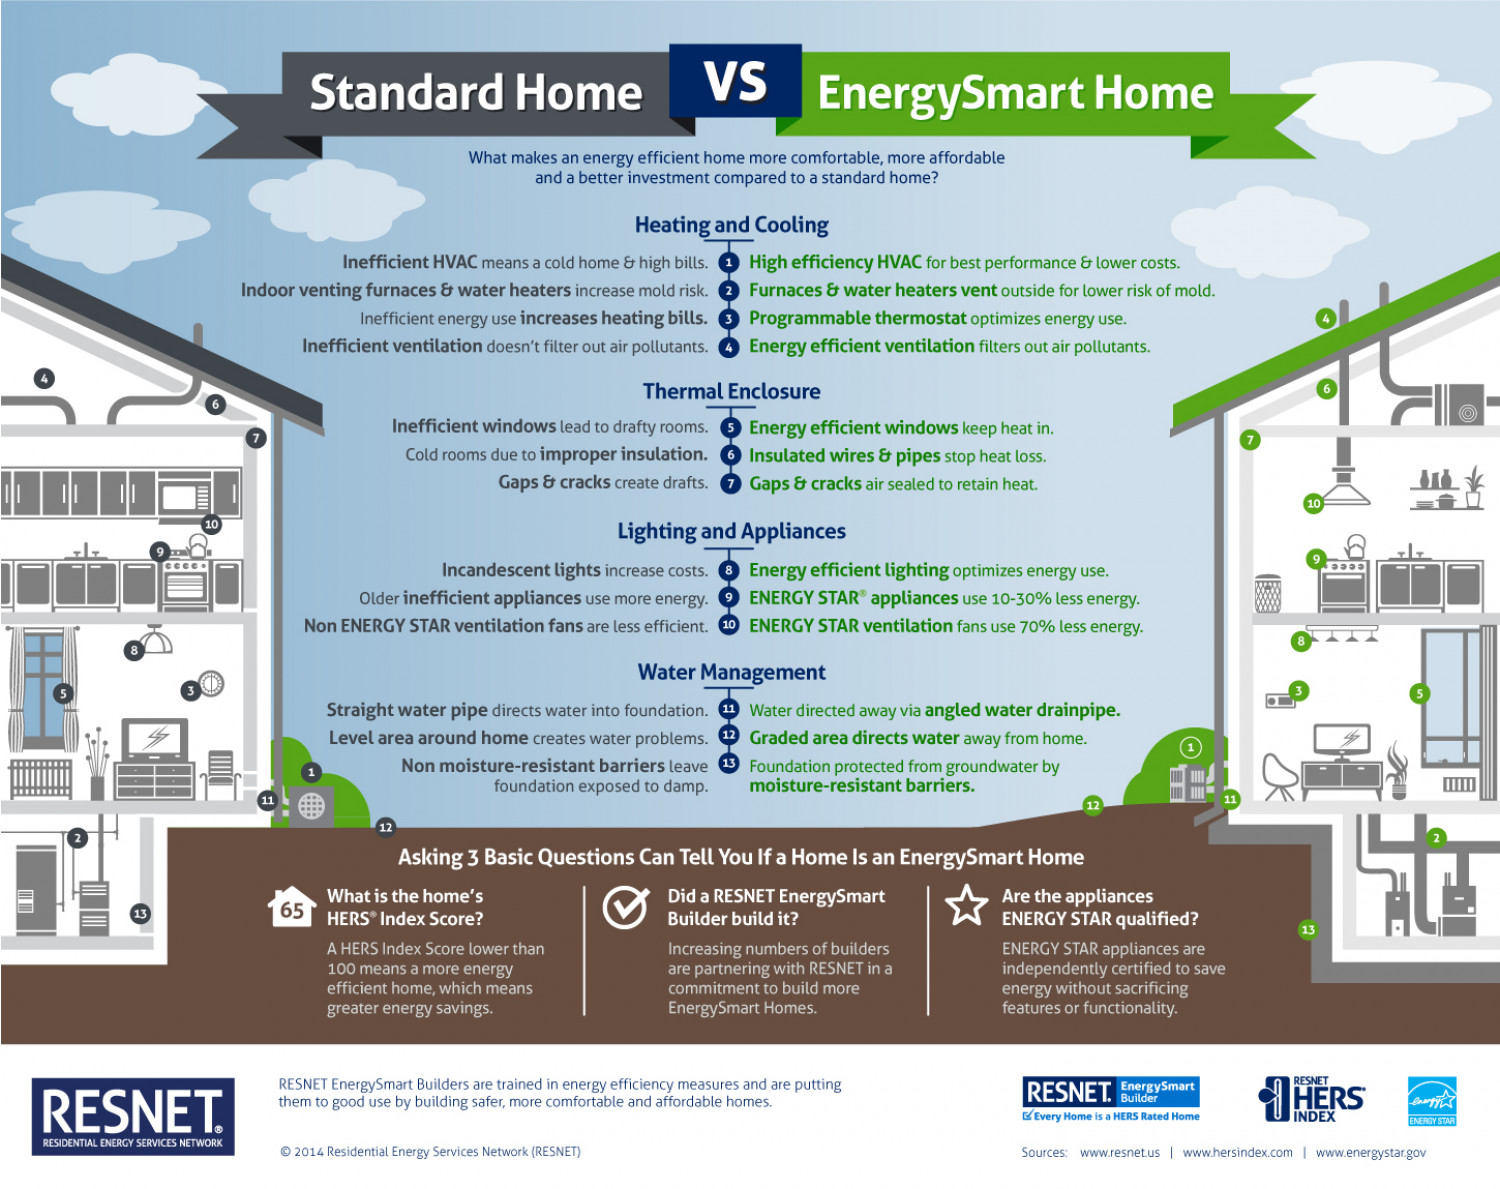 Standard Home vs. EnergySmart Home Infographic